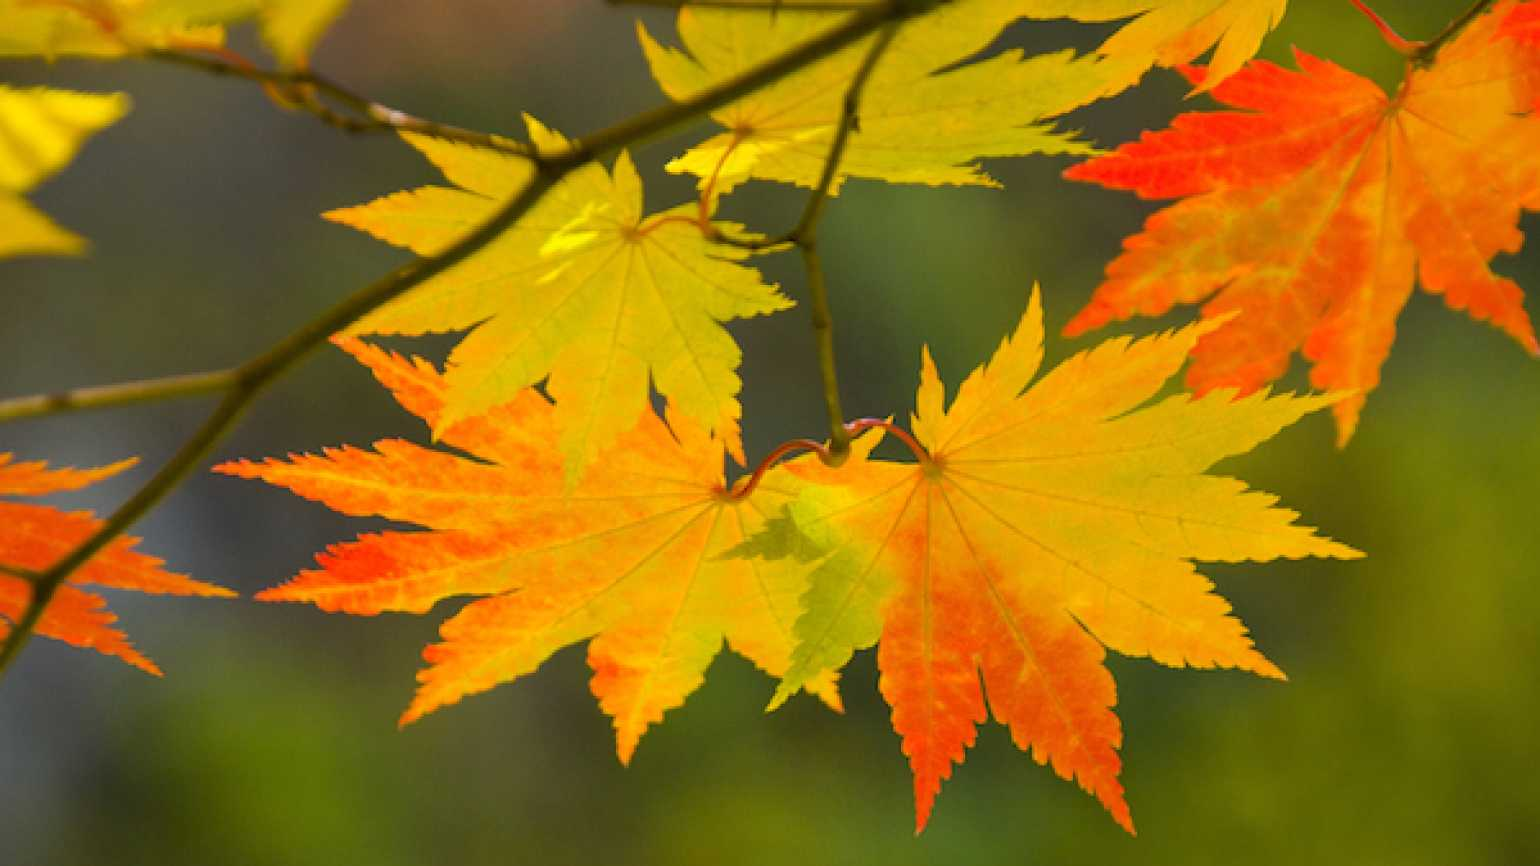 A prayer for autumn to slow down and appreciate the season.